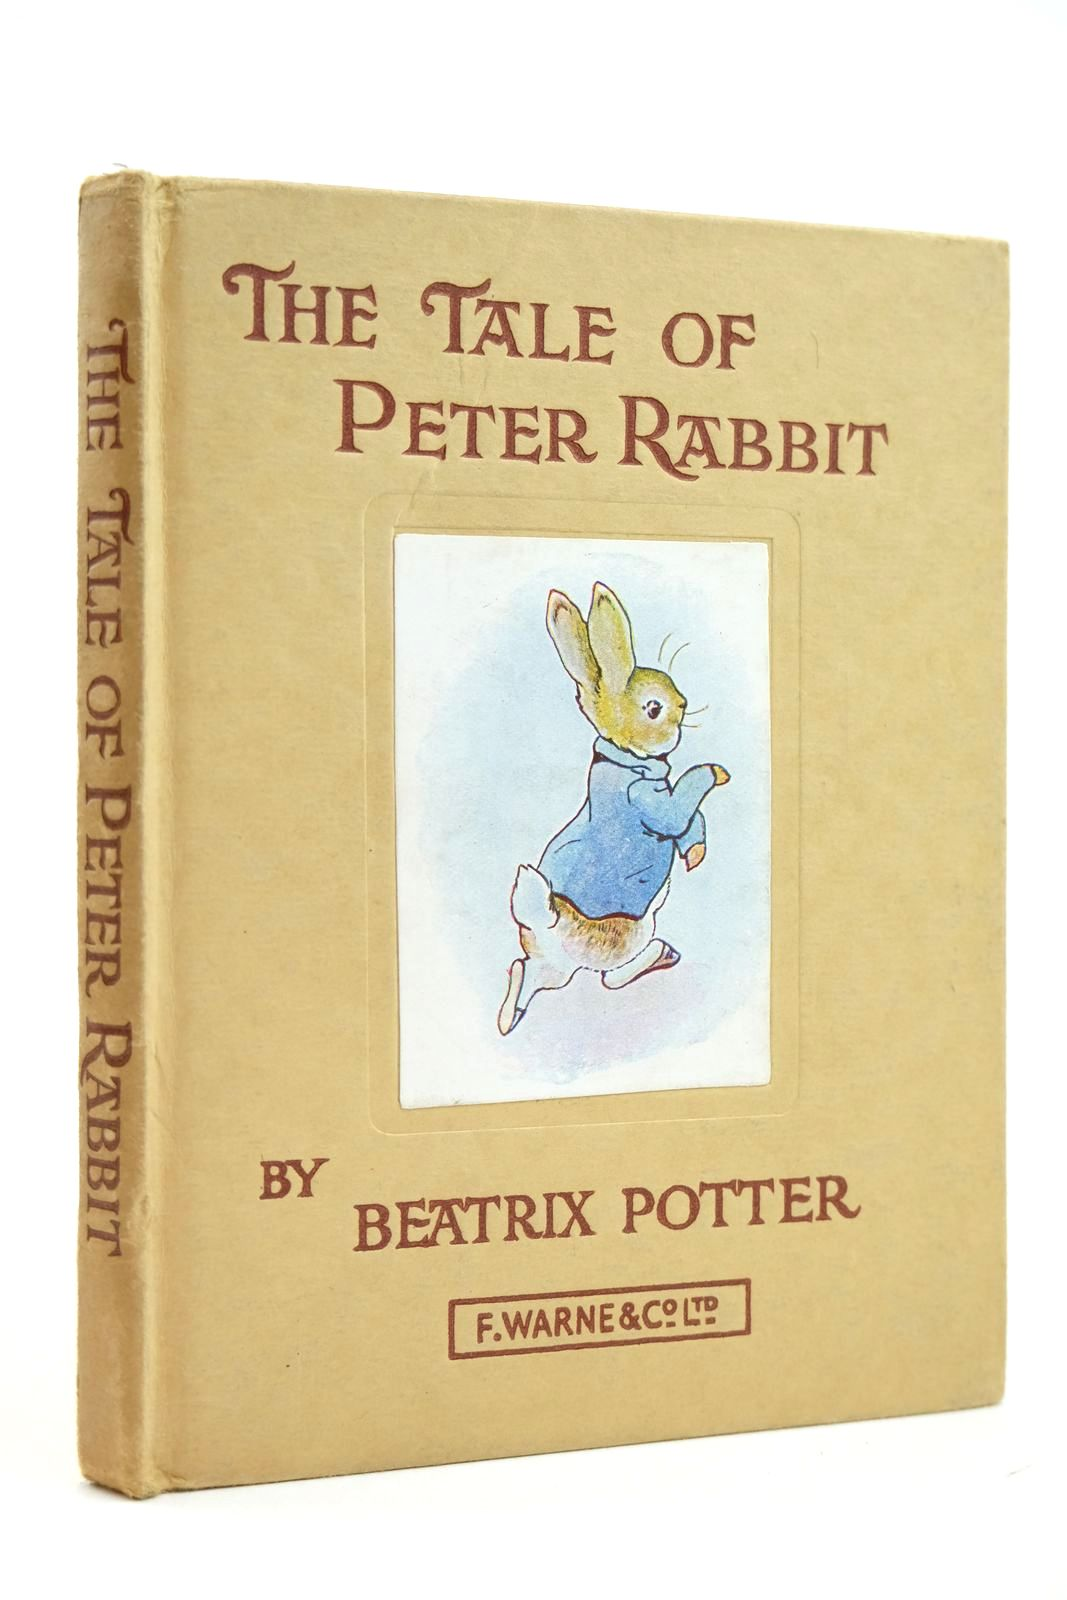 Photo of THE TALE OF PETER RABBIT written by Potter, Beatrix illustrated by Potter, Beatrix published by Frederick Warne & Co Ltd. (STOCK CODE: 2131890)  for sale by Stella & Rose's Books